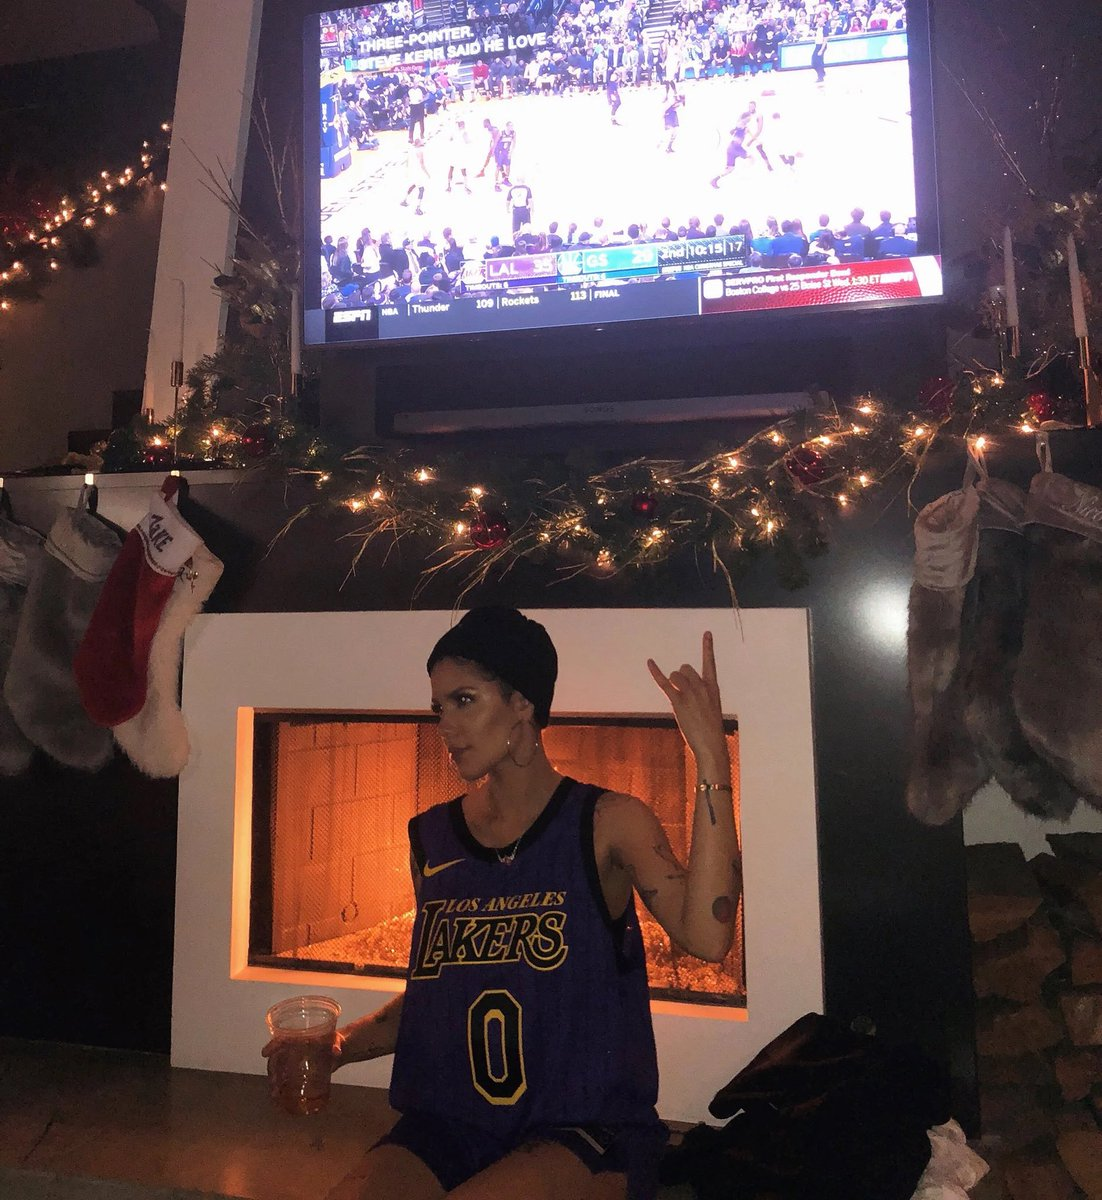 not a hater I promiseeee! I been a kuz fan always I just like to bust his balls